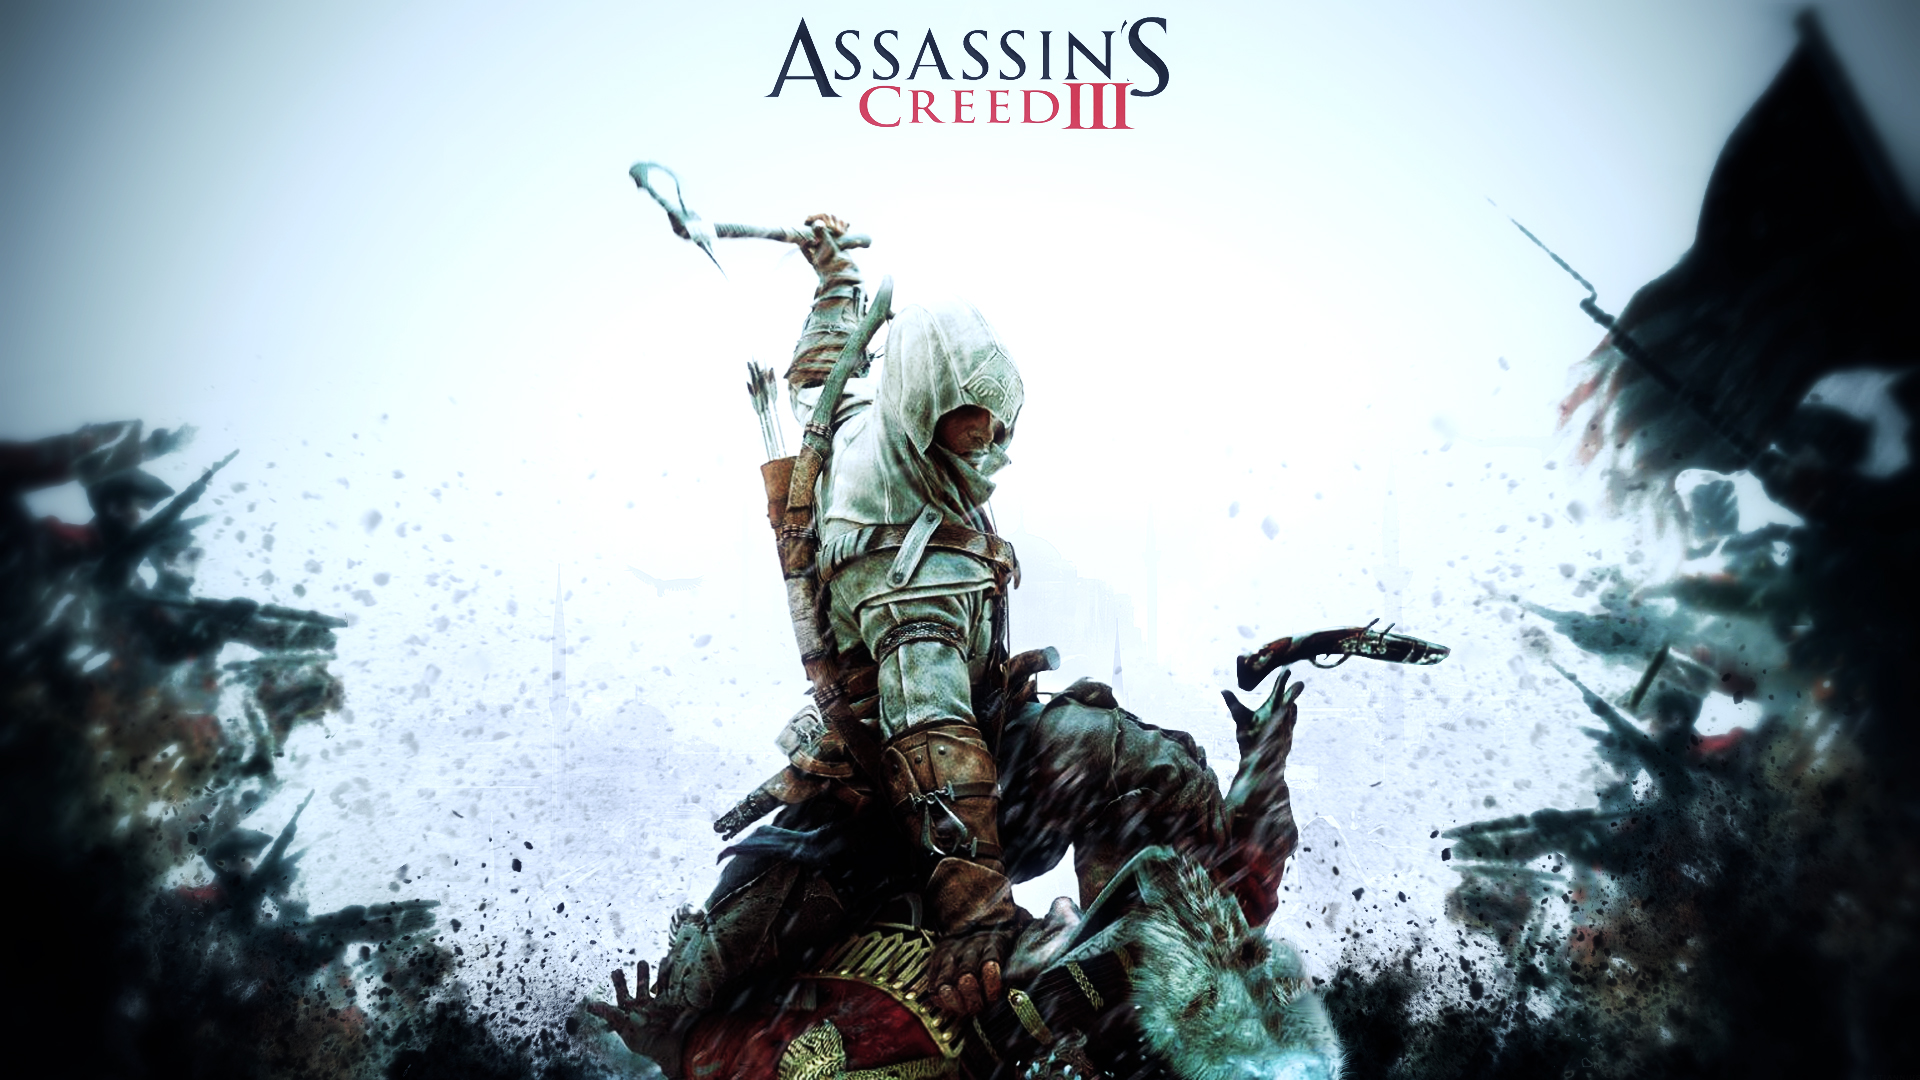 Assassins Creed 3 Wallpapers HD Wallpapers 1920x1080